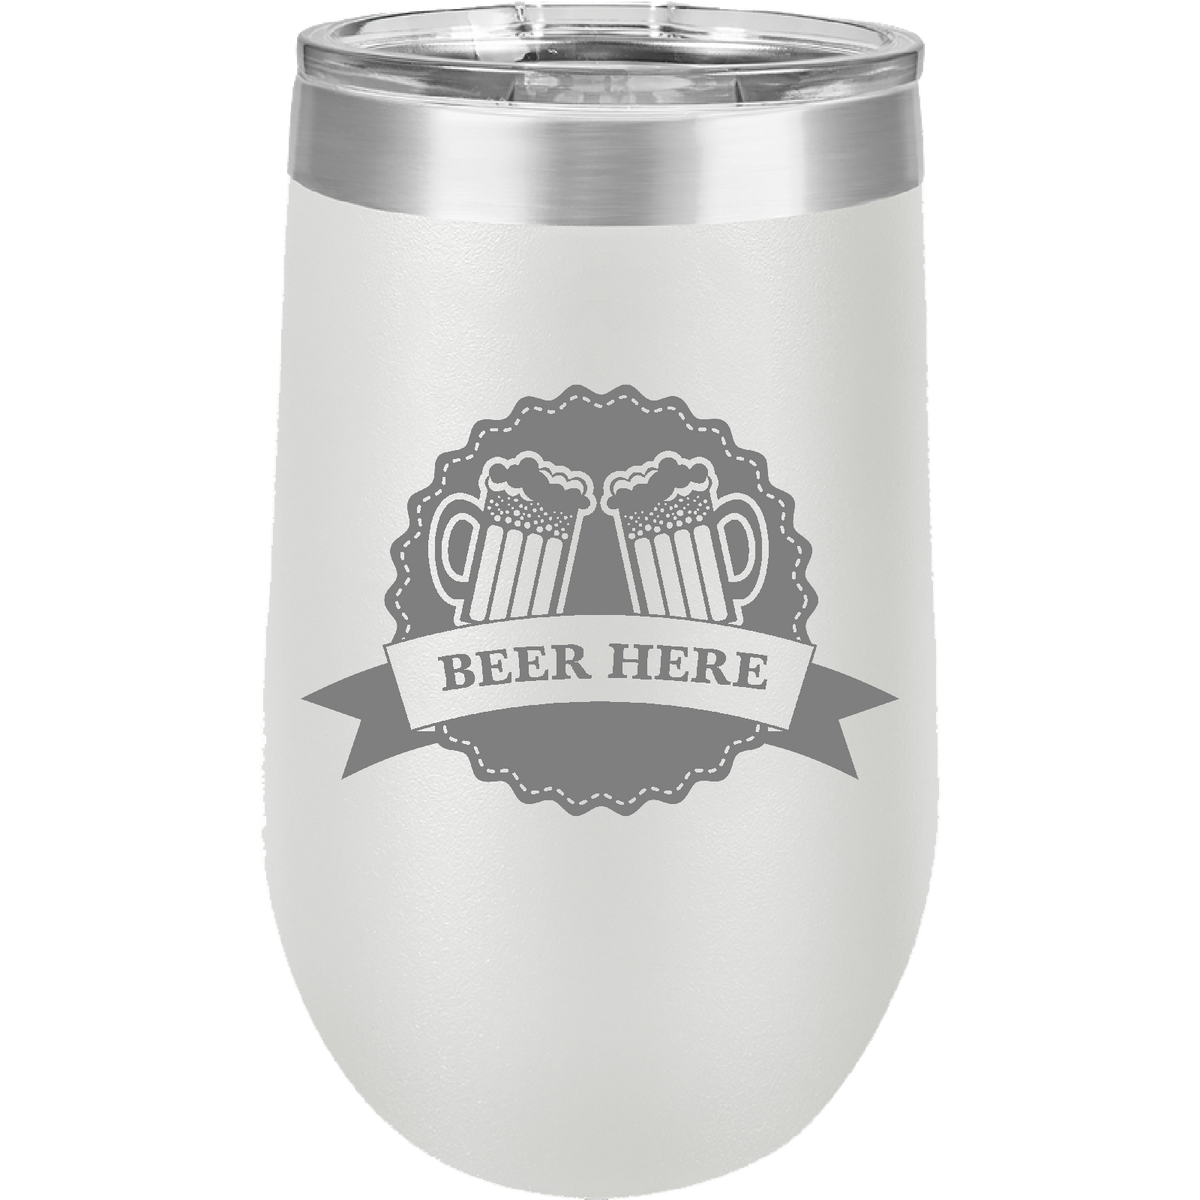 Beer Here - 16oz. Engraved Stemless Wine Tumbler with Clear Lid